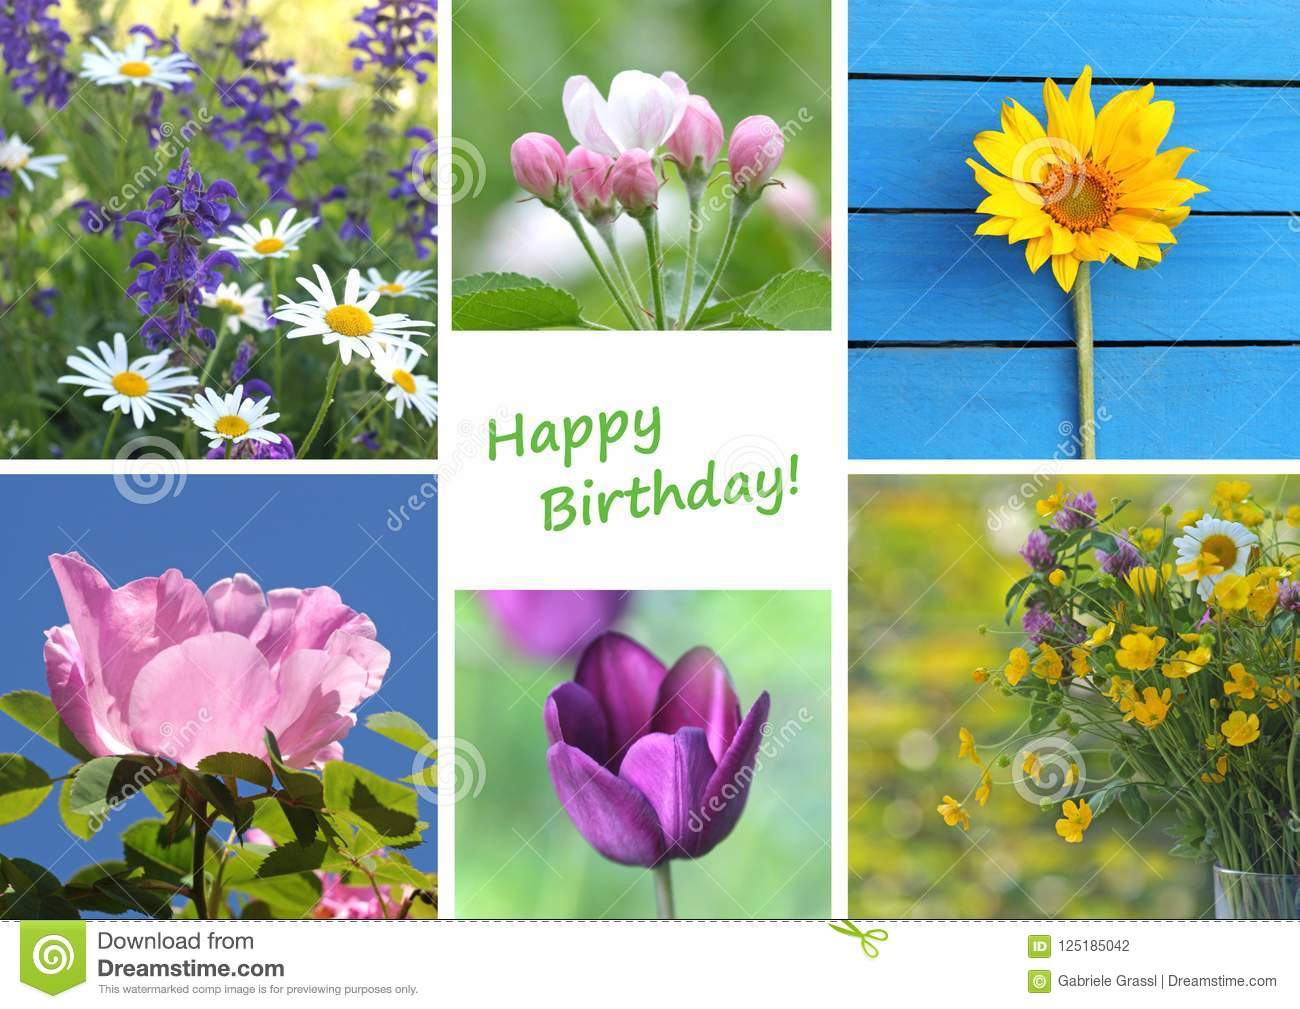 Birthday greeting card with a variety of flowers stock photo image download birthday greeting card with a variety of flowers stock photo image of card izmirmasajfo